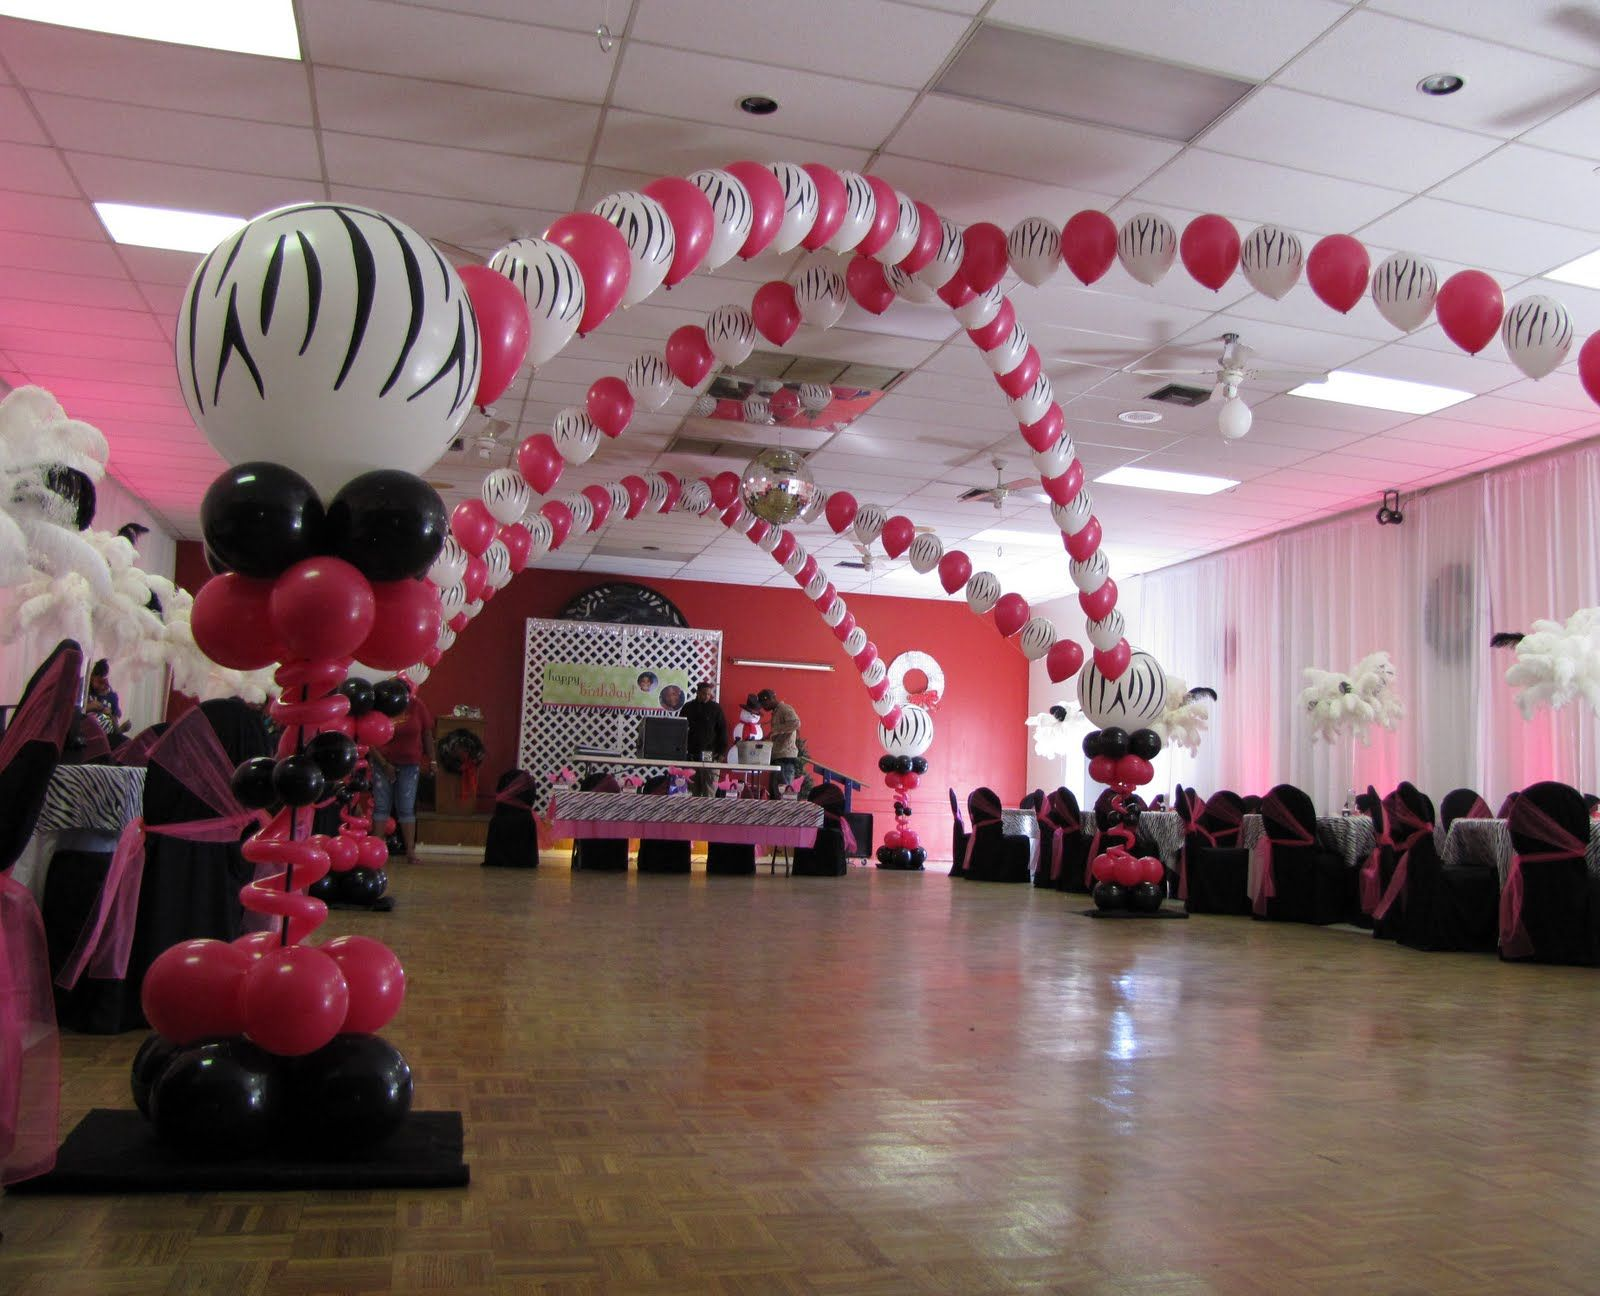 Sweet 16 Room Decorations | ... Event Decor Custom Balloon Decor And Fabric  Designs